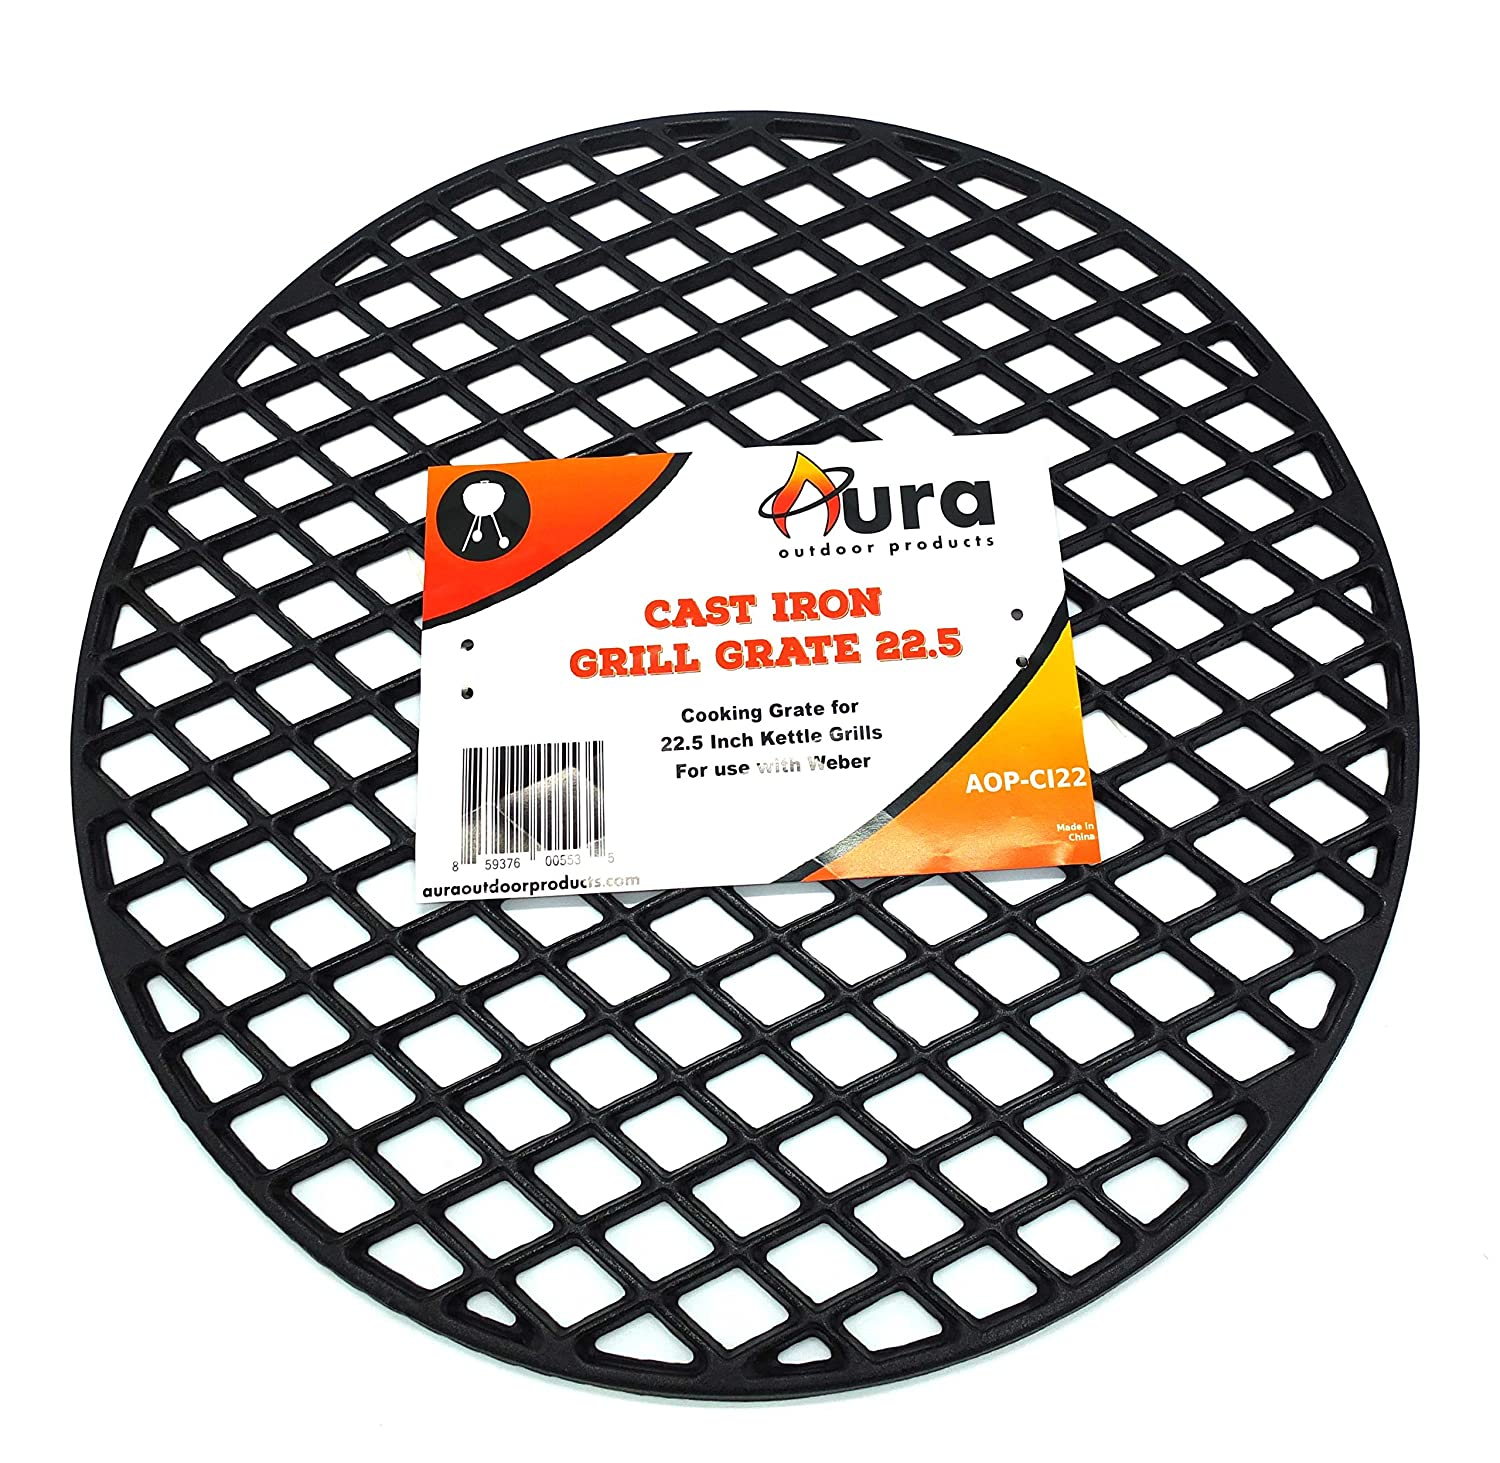 Amazon.com : Aura Outdoor Products Cast Iron Grill Grate for 22 Inch ...